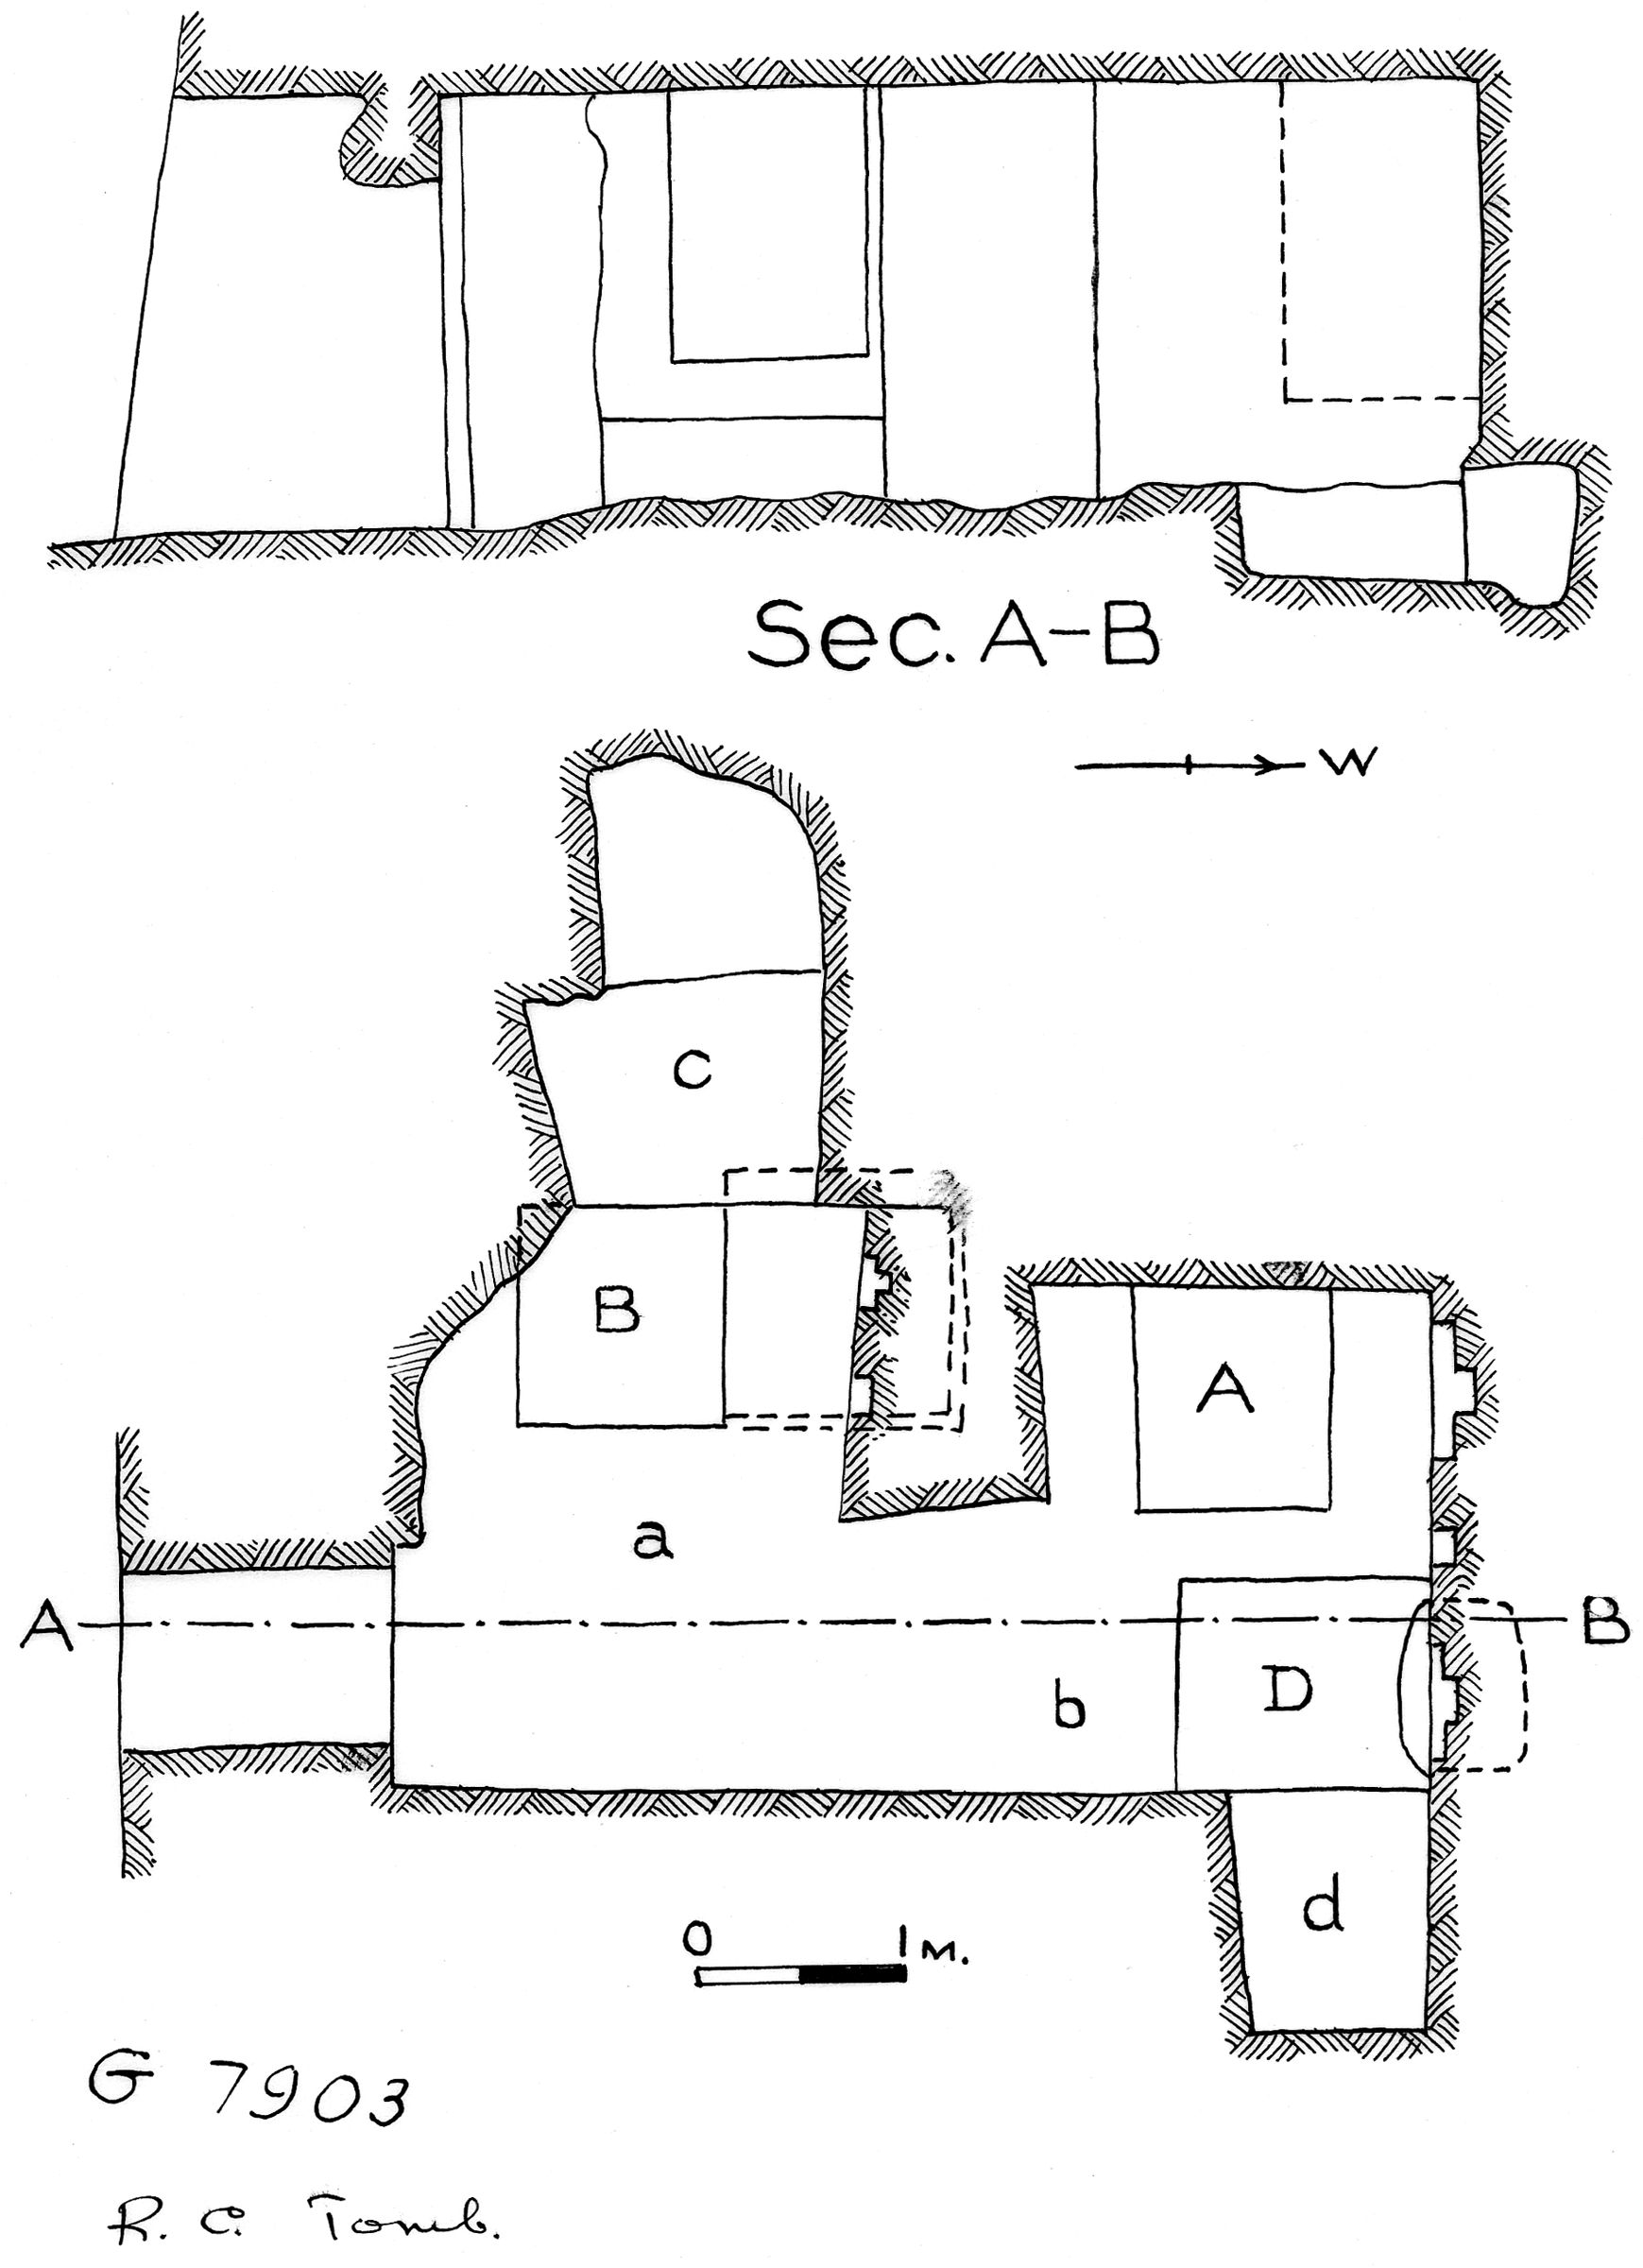 Maps and plans: G 7903, Plan and section